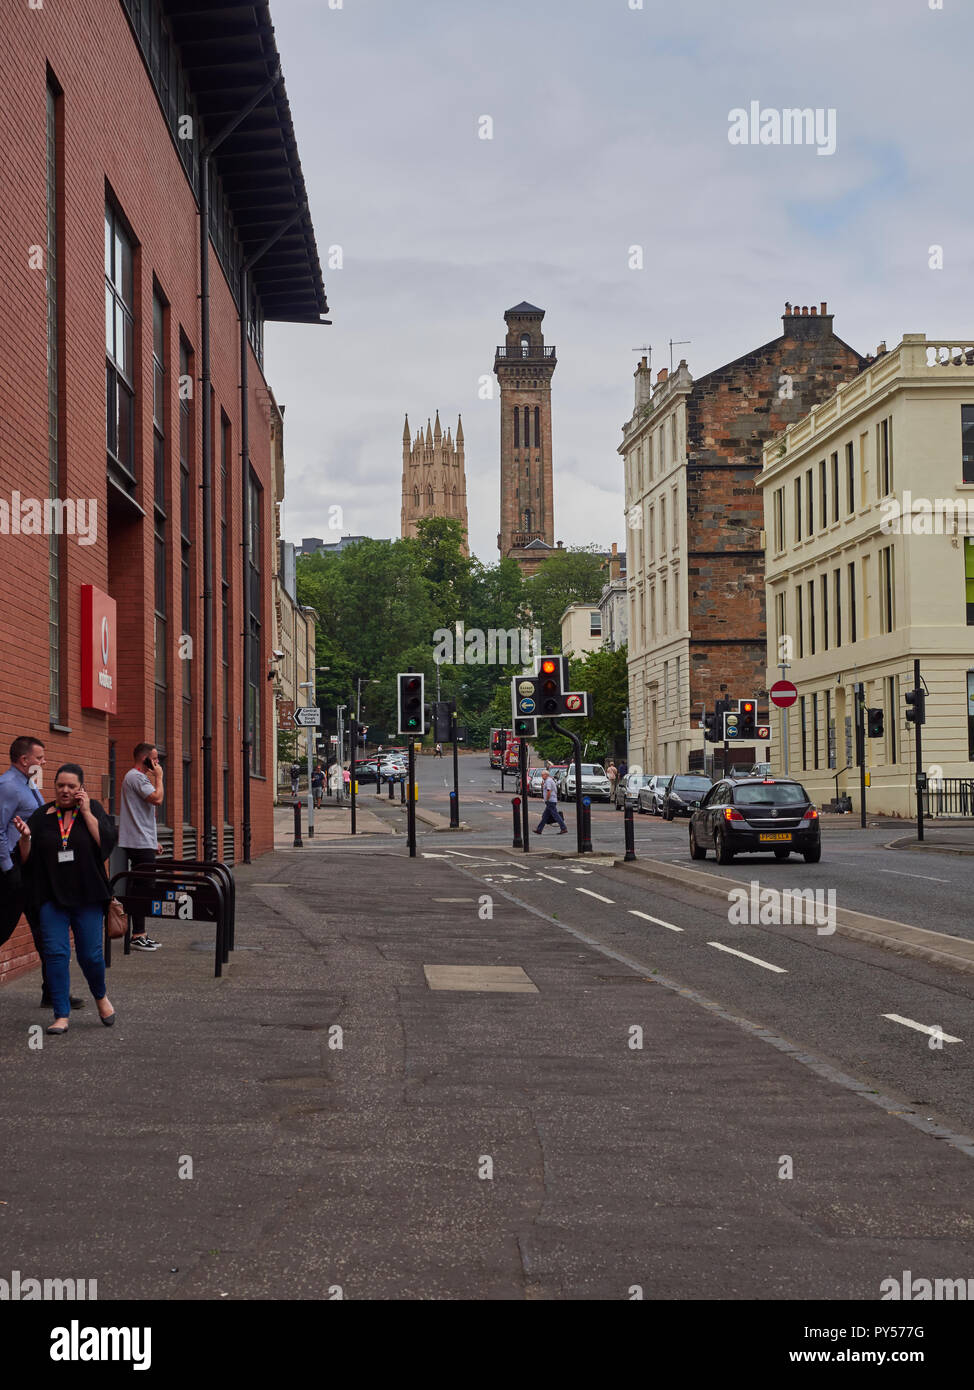 Looking north up Claremont St in Glasgow towards Kelvin Park and the University area of the City. Glasgow, Scotland, UK. - Stock Image